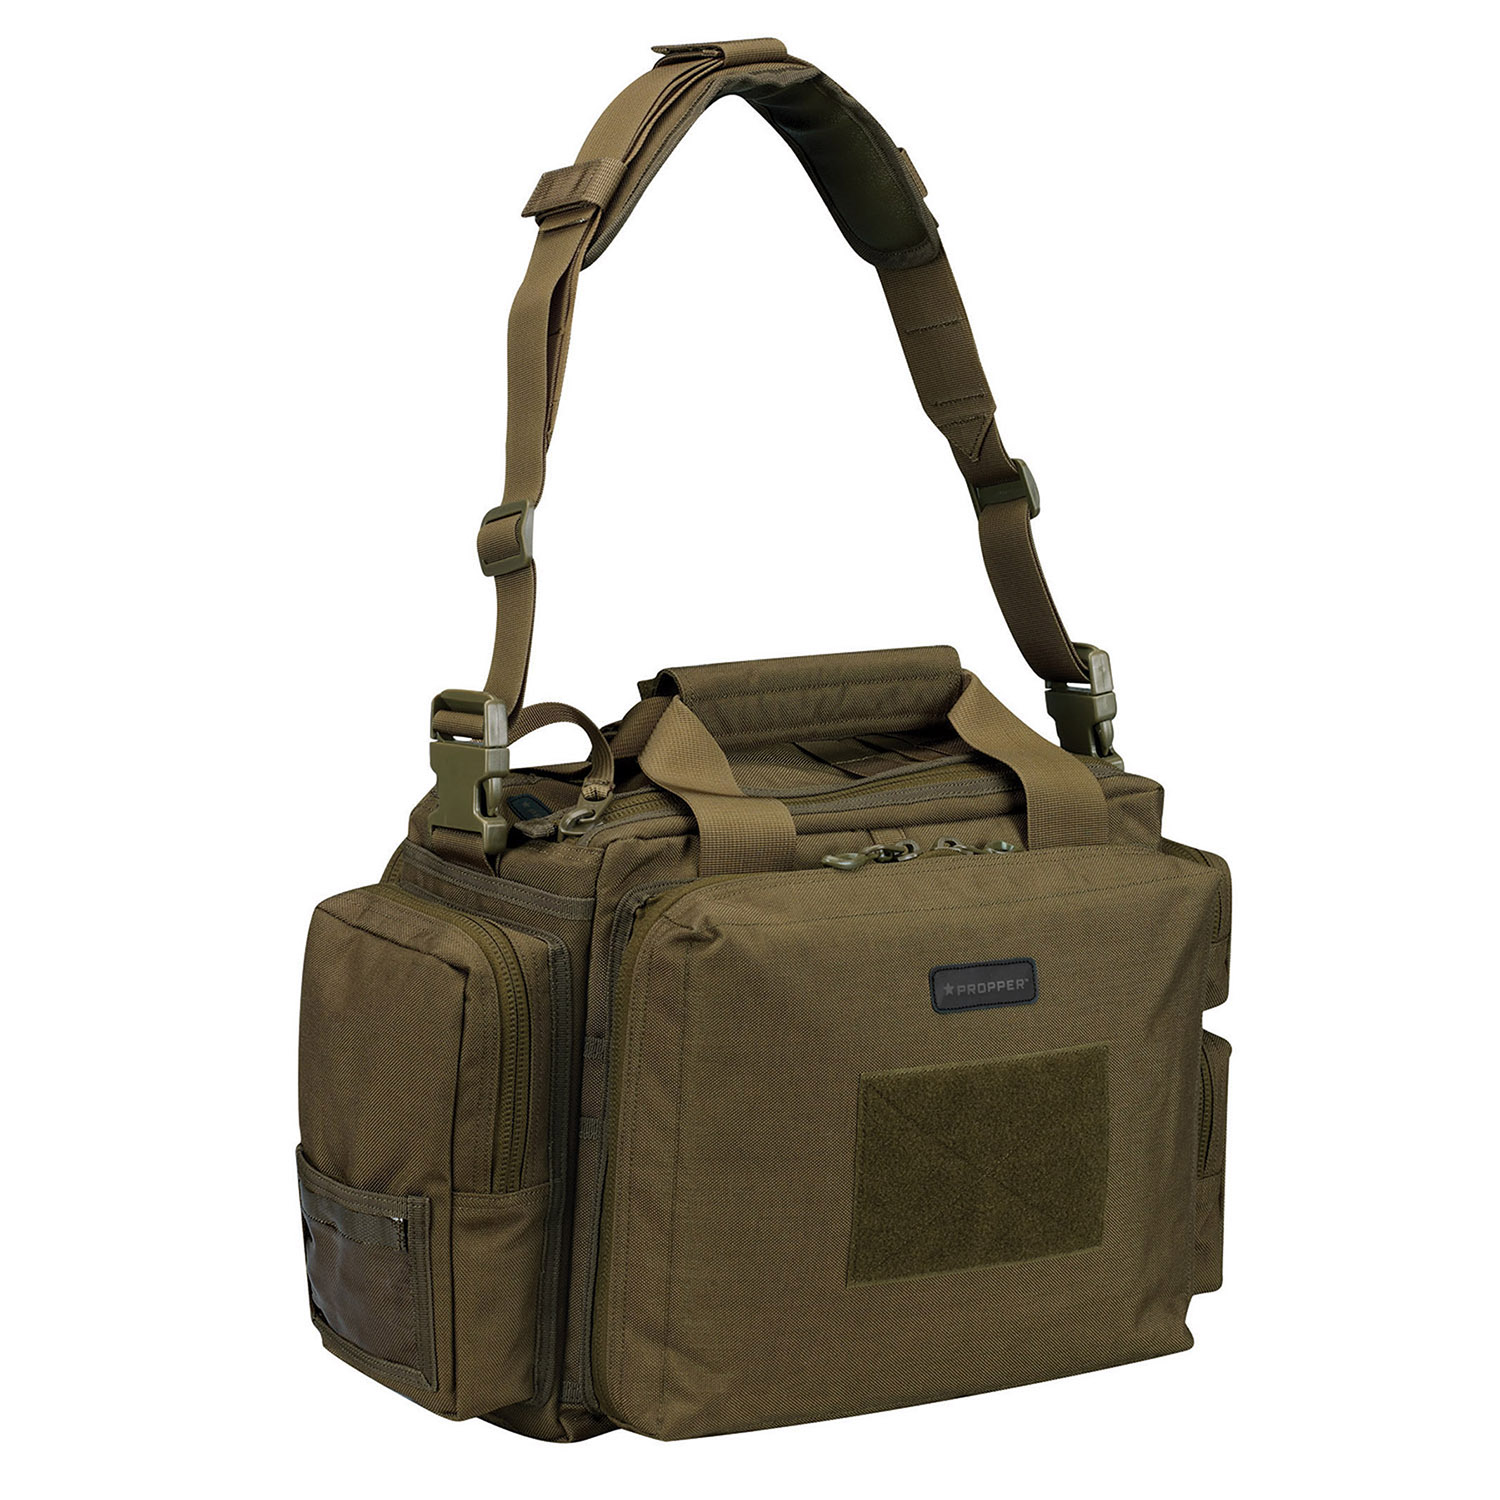 Propper Gen Multi-Purpose Bag